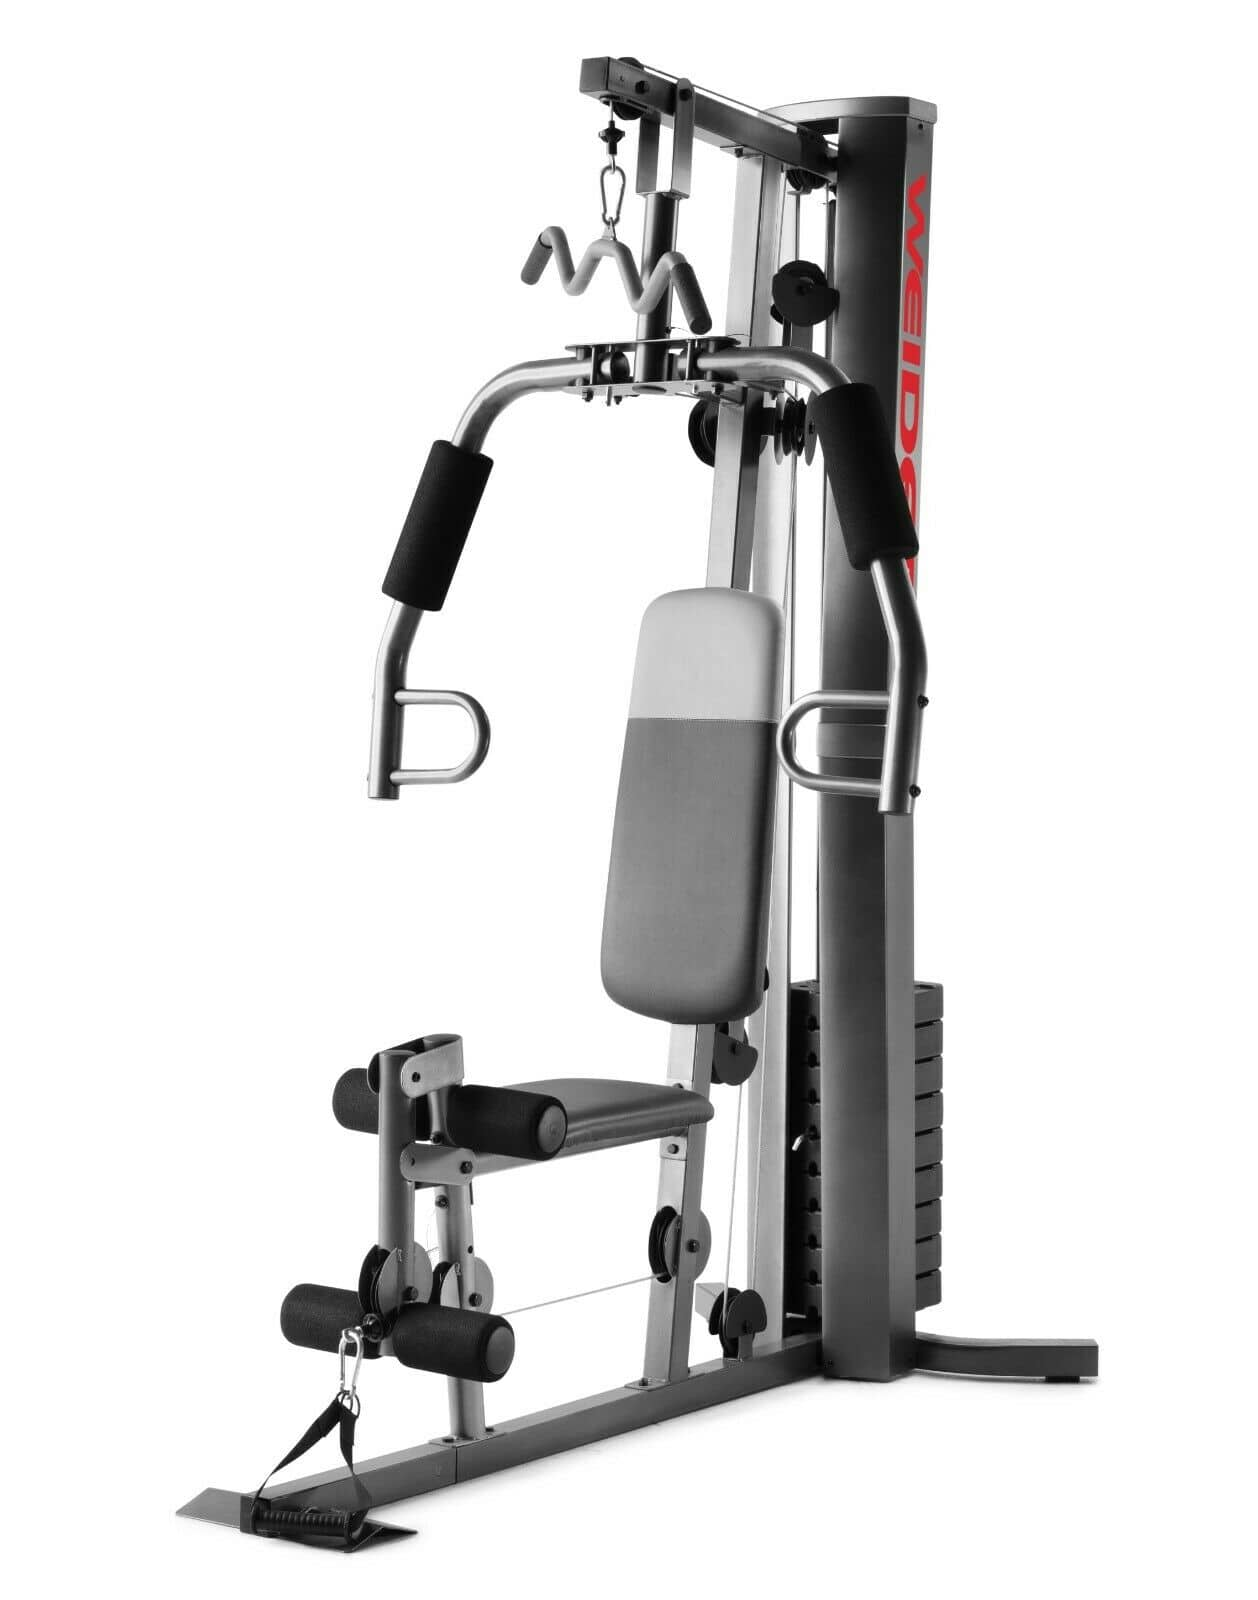 Weider XRS 50 Home Gym System $279.99 with $50 Kohls Cash and Free Shipping